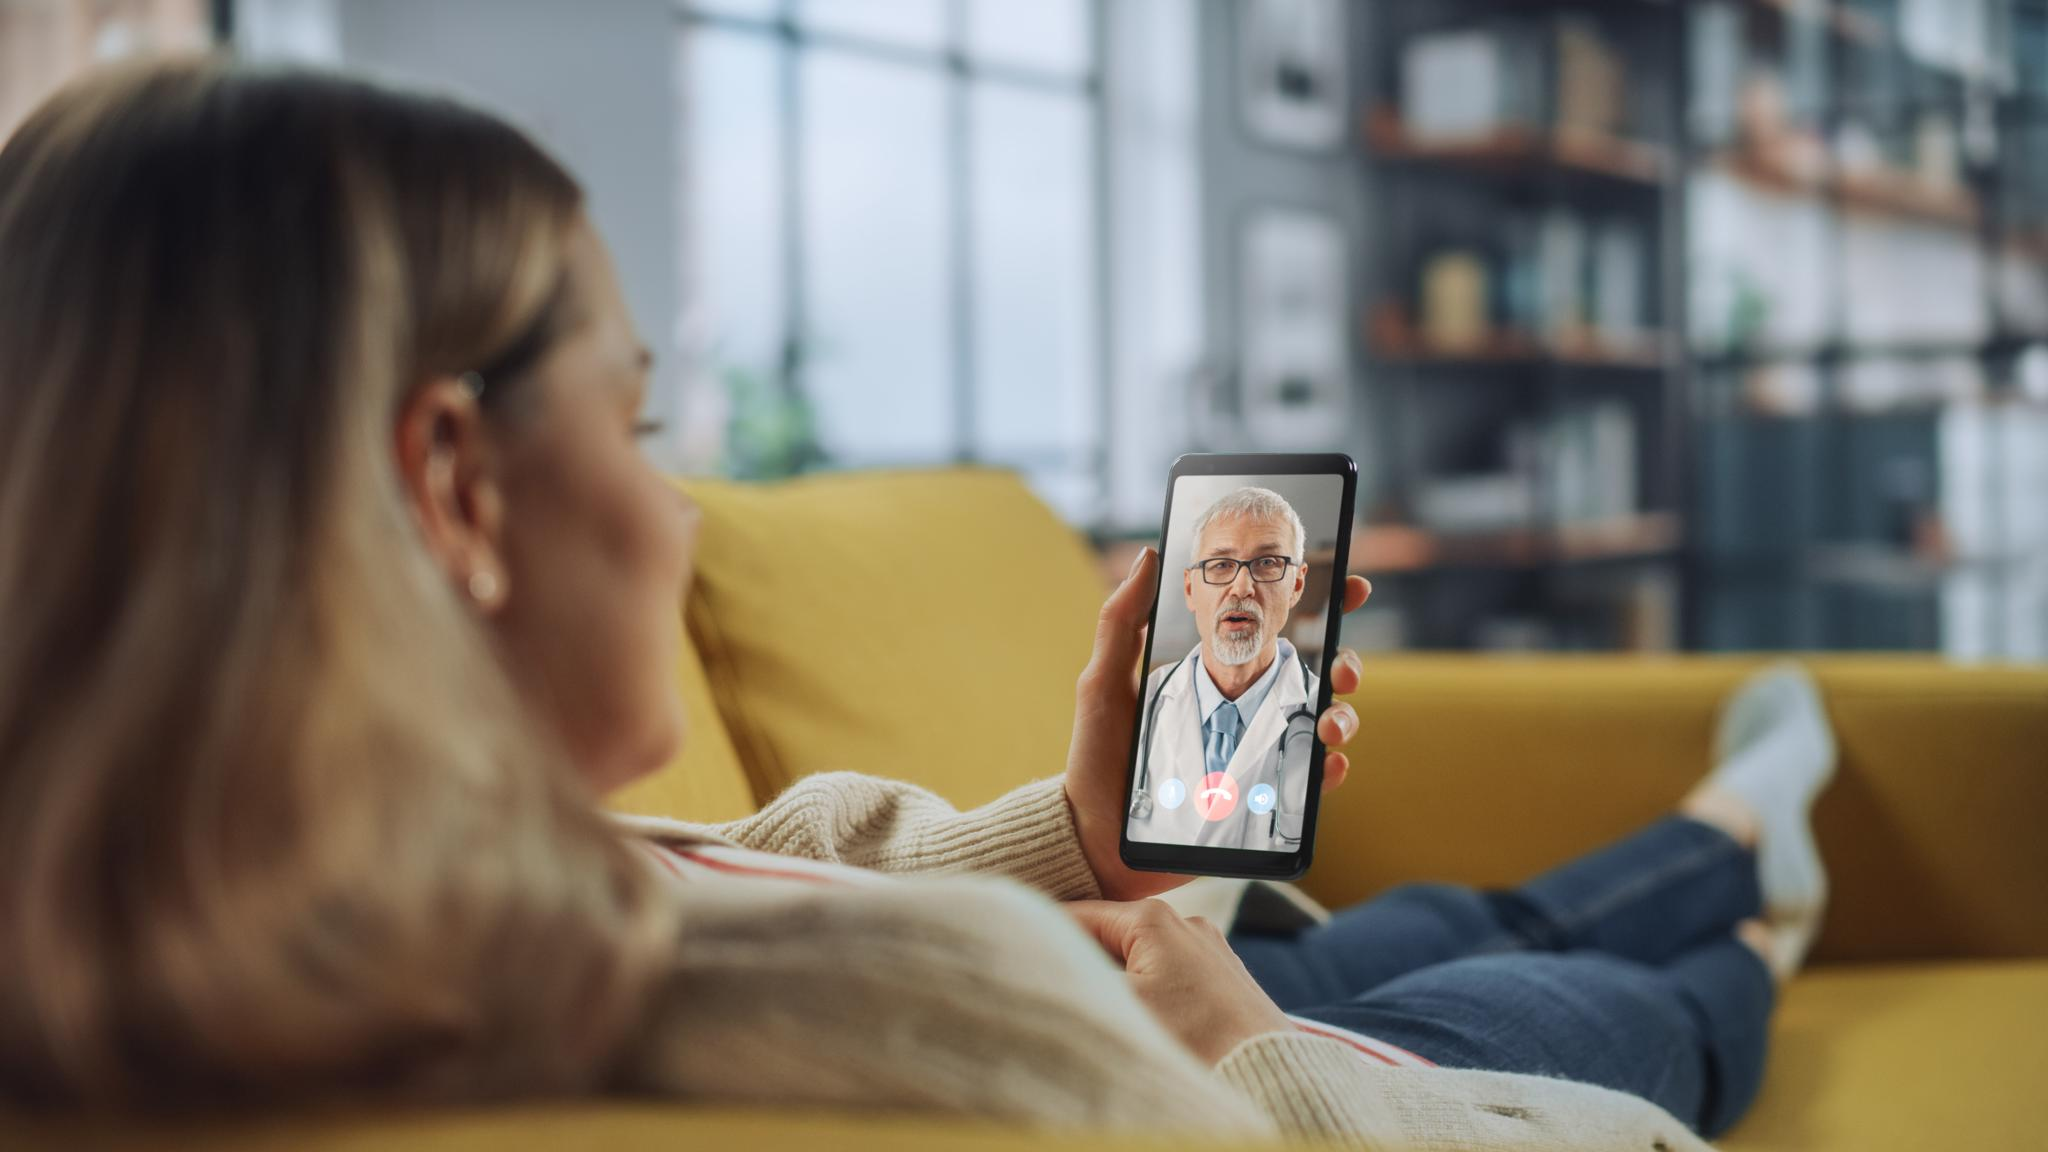 Close Up of a Female Chatting in a Video Call with Her Senior Family Doctor on Smartphone from Living Room. Ill-Feeling Woman Making a Call from Home with Physician Over the Internet.